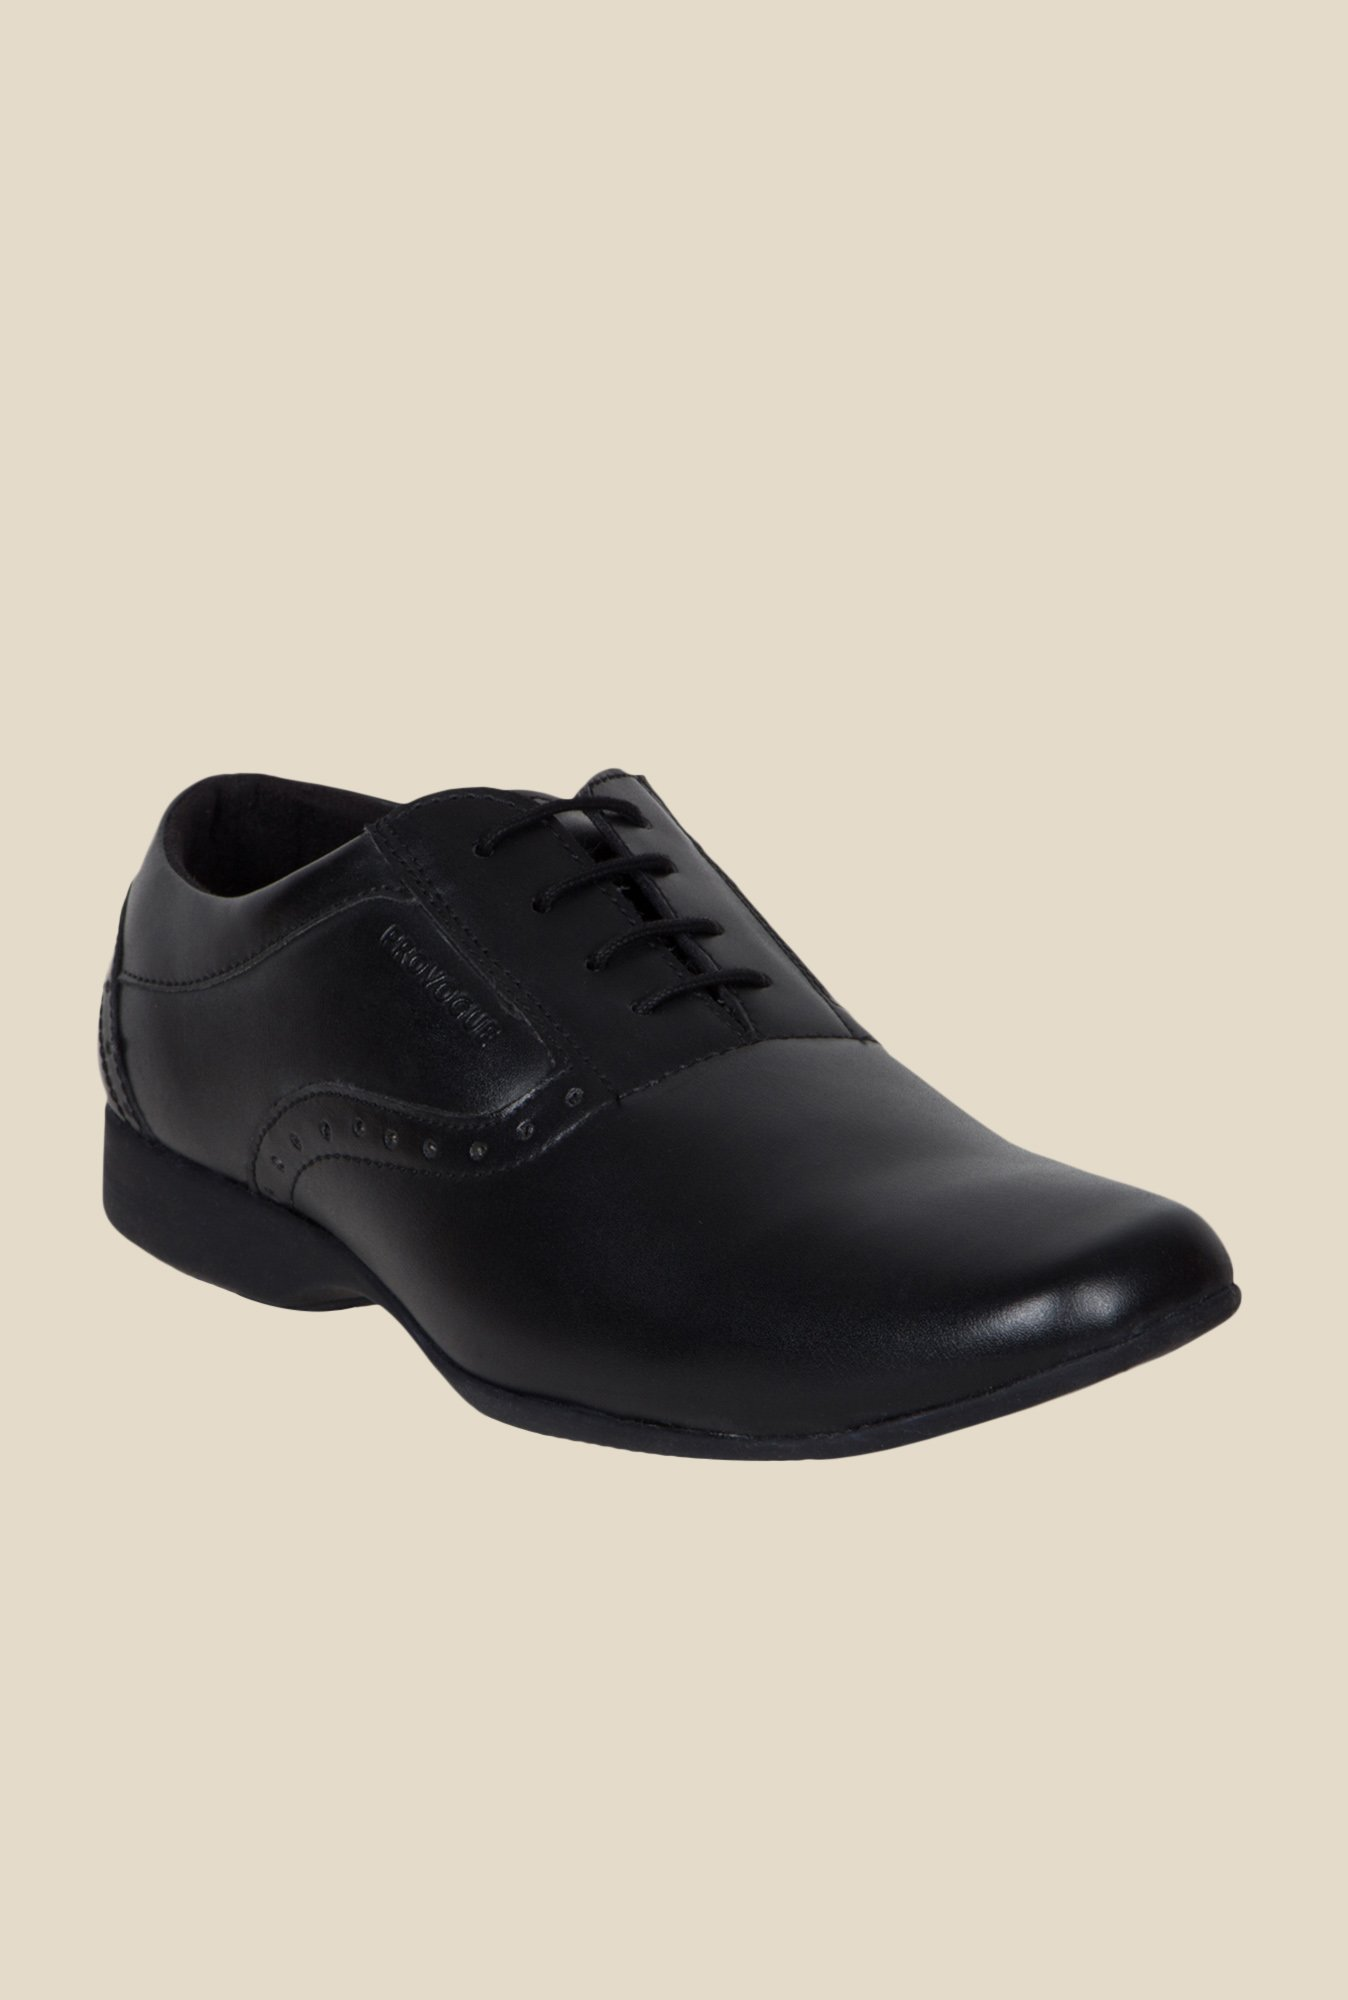 Provogue Black Oxford Shoes